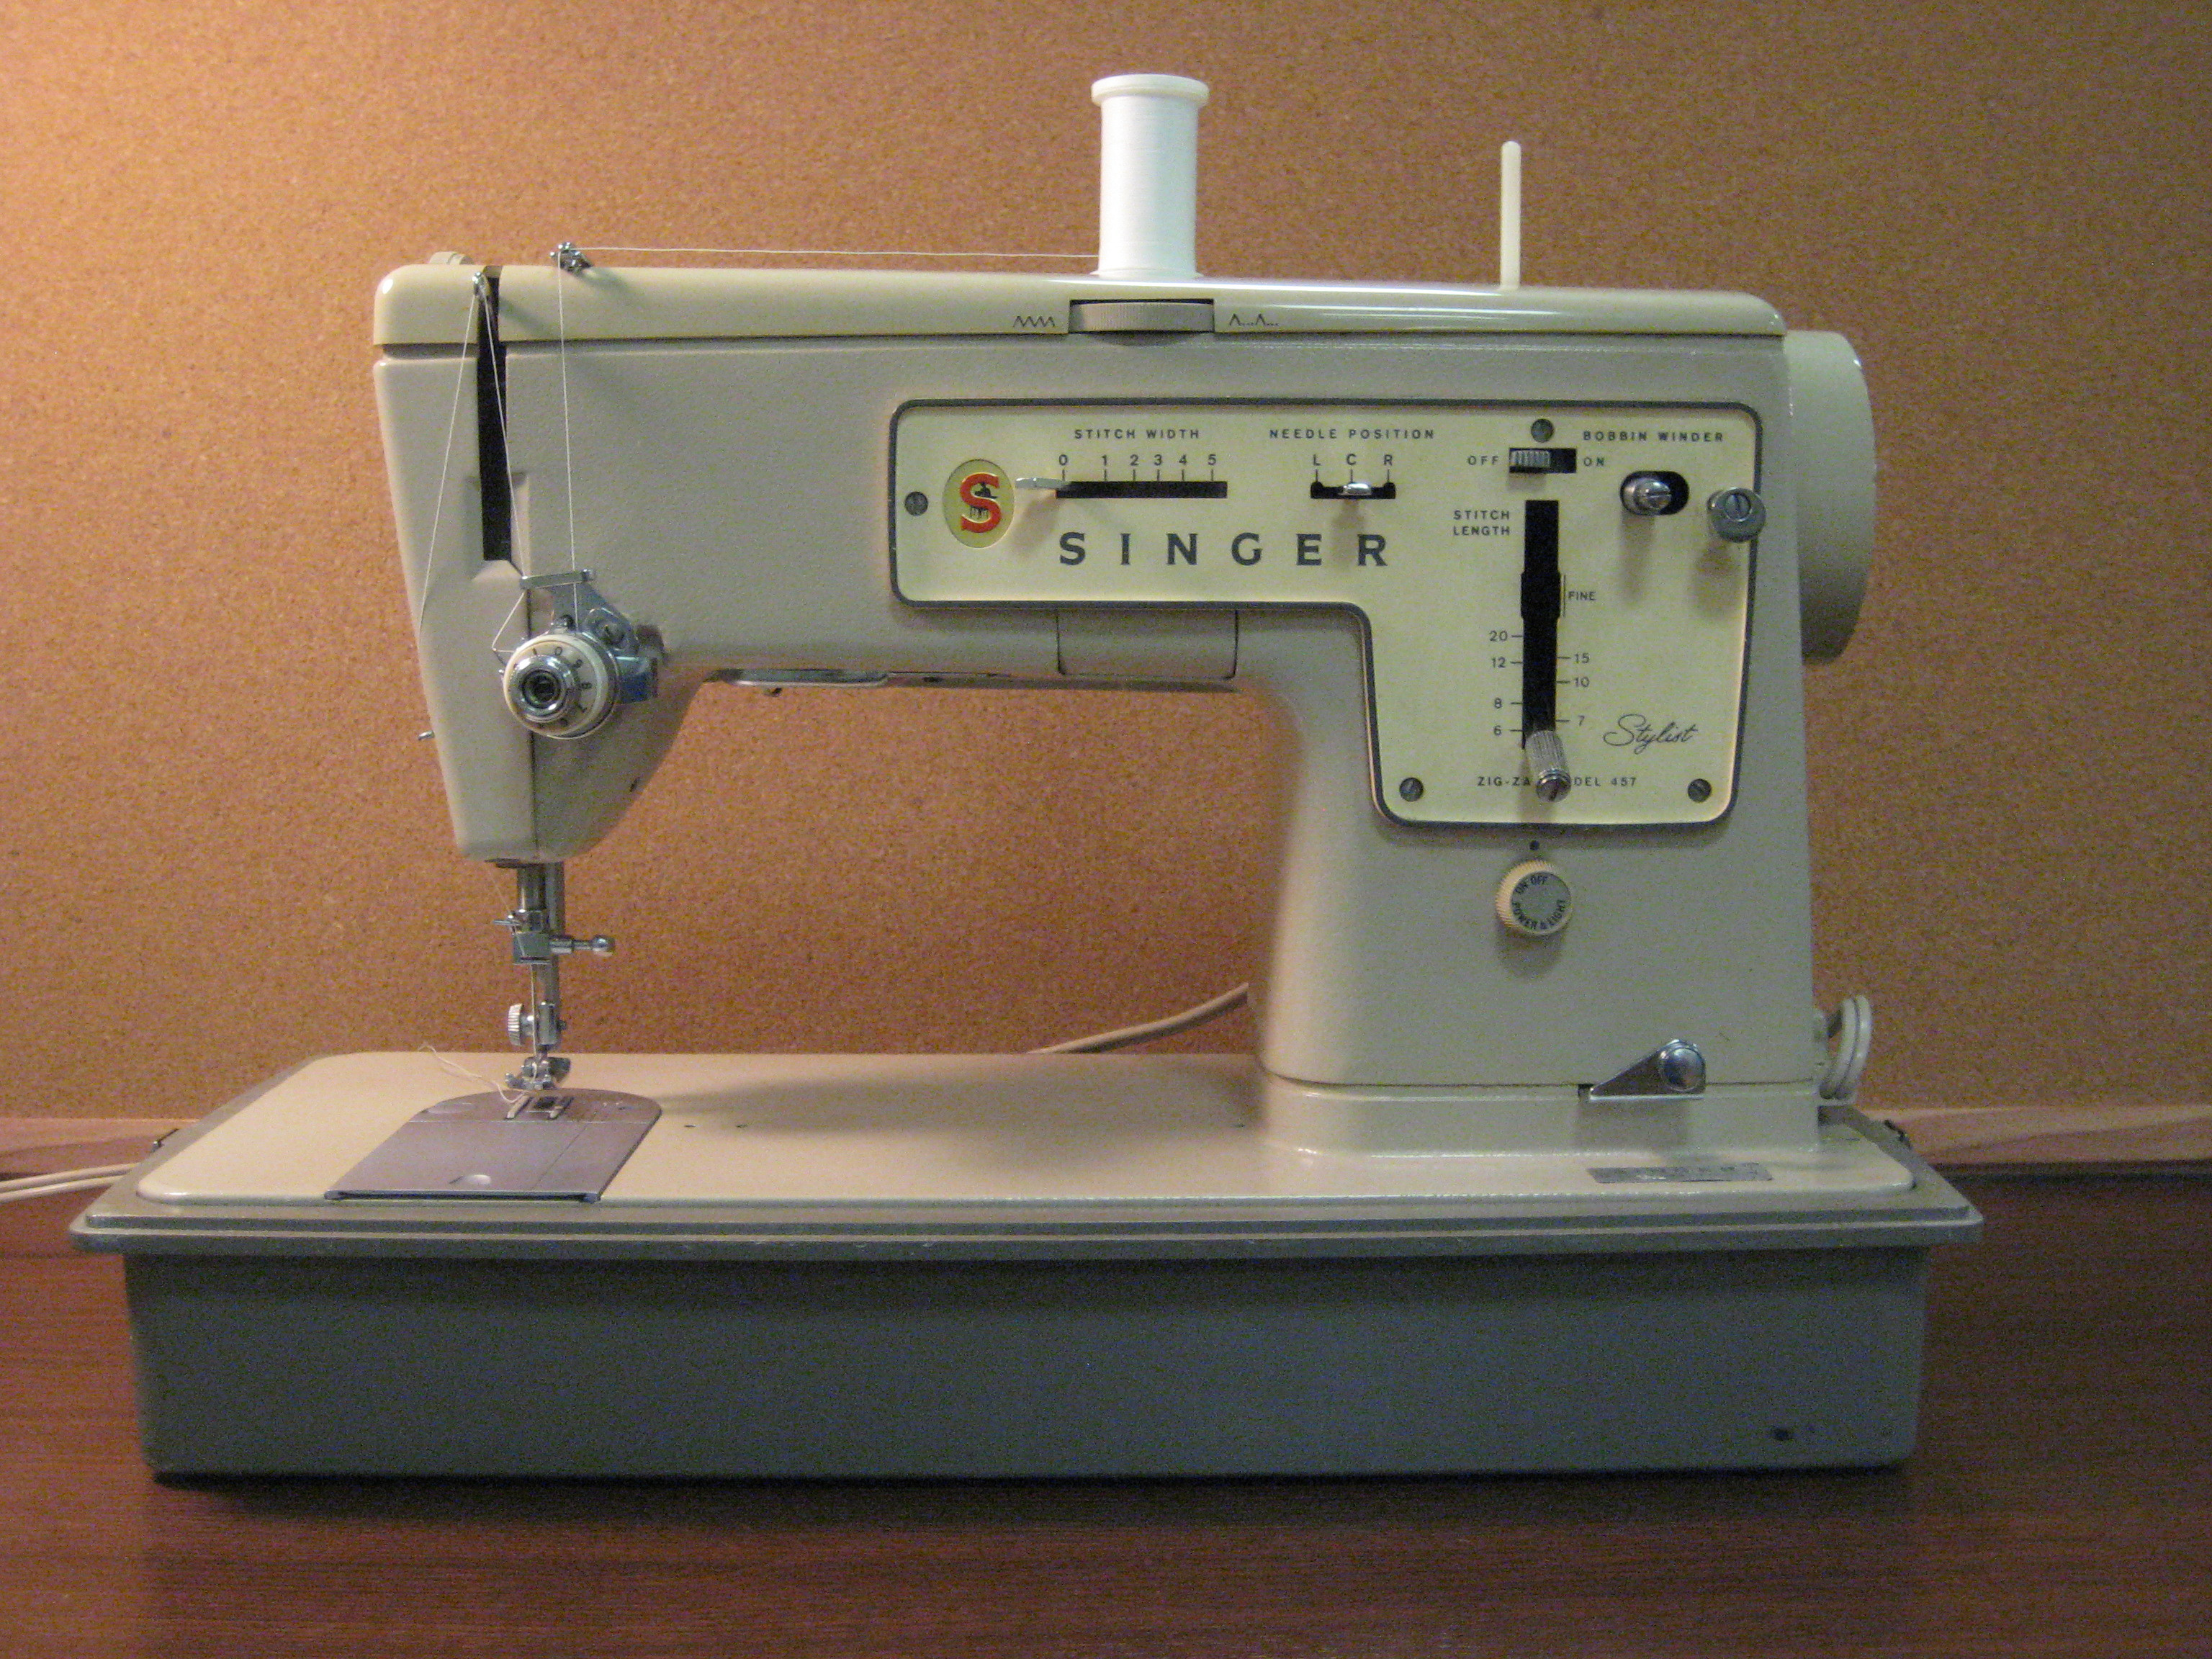 Elegant Sewing Machines Singer Sewing Machine Feet Of Amazing 50 Pics Singer Sewing Machine Feet